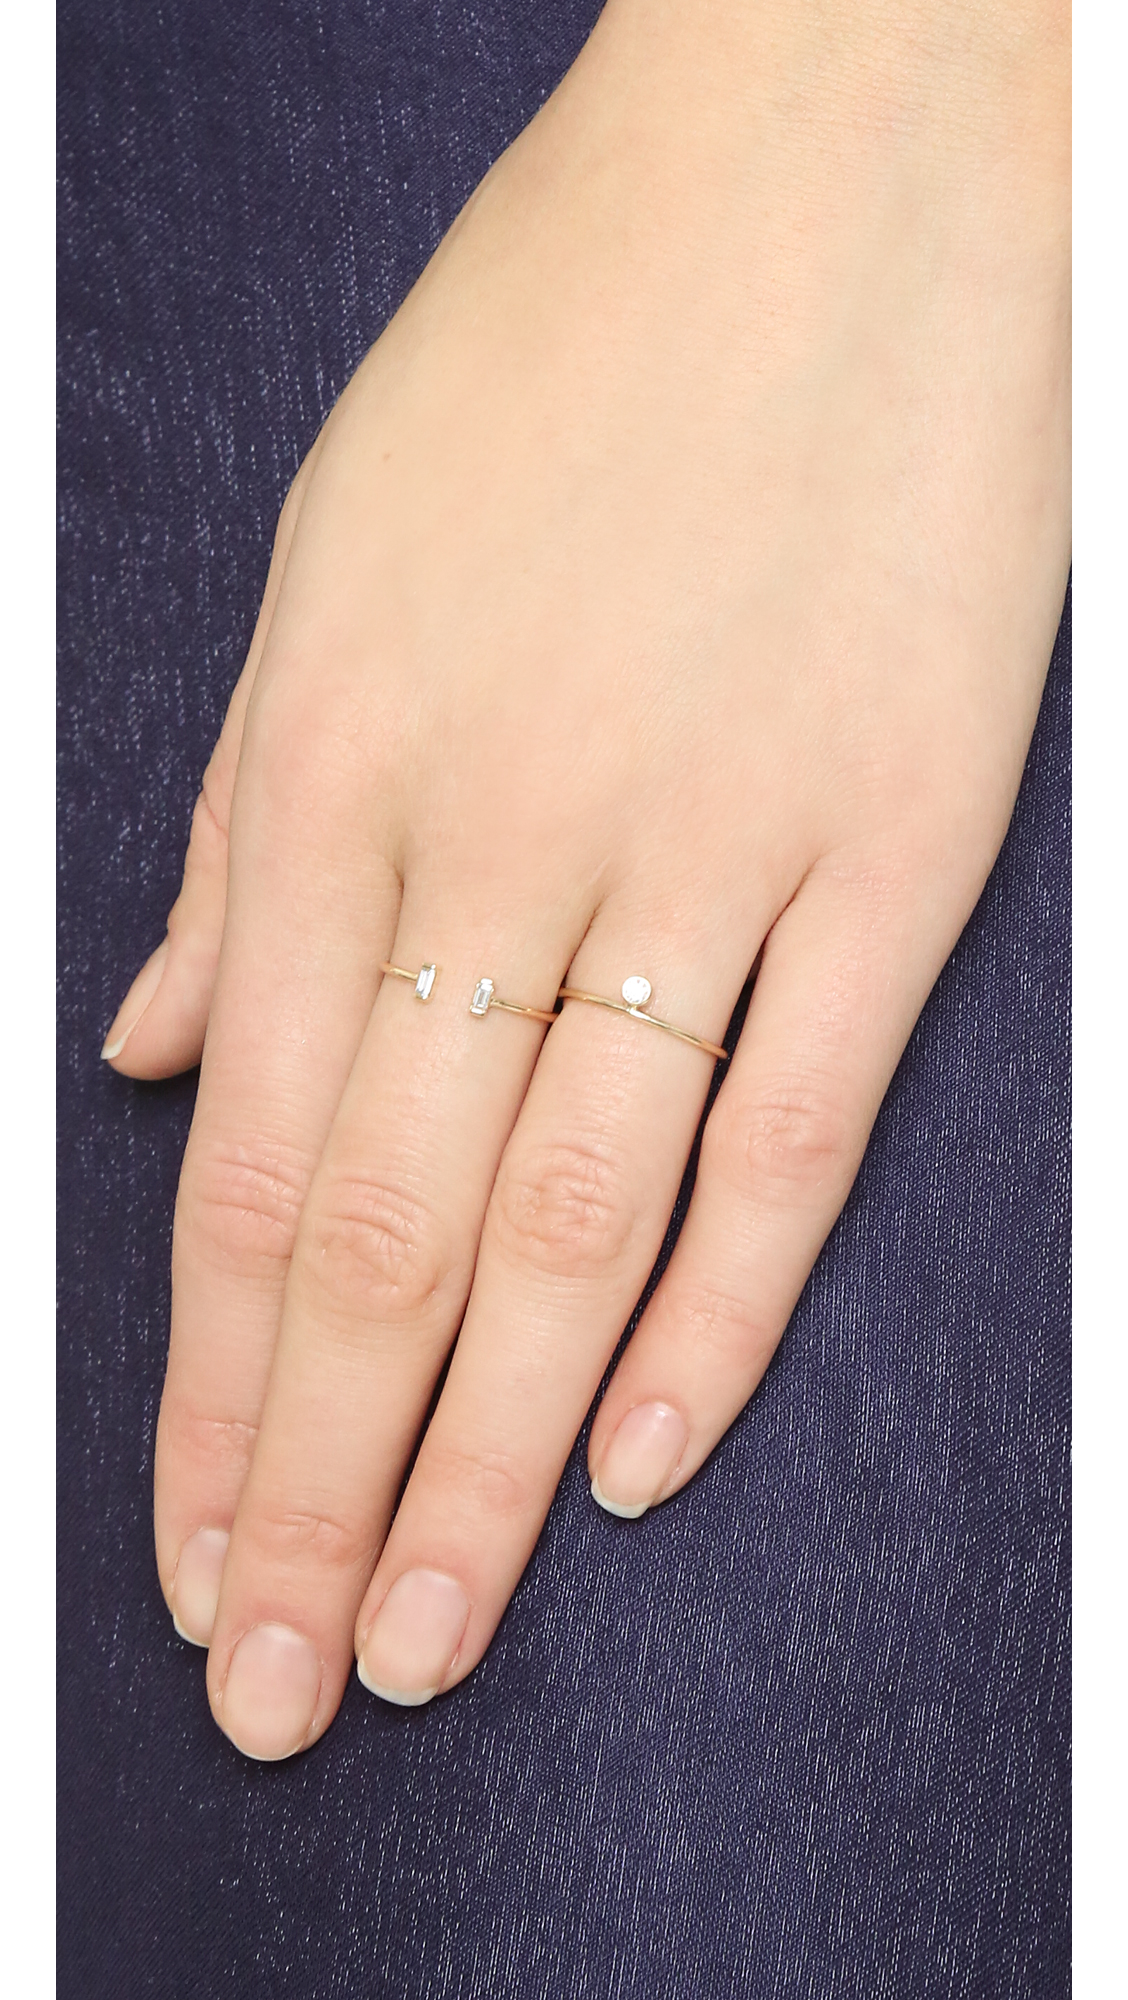 Zoe Chicco Ring Size